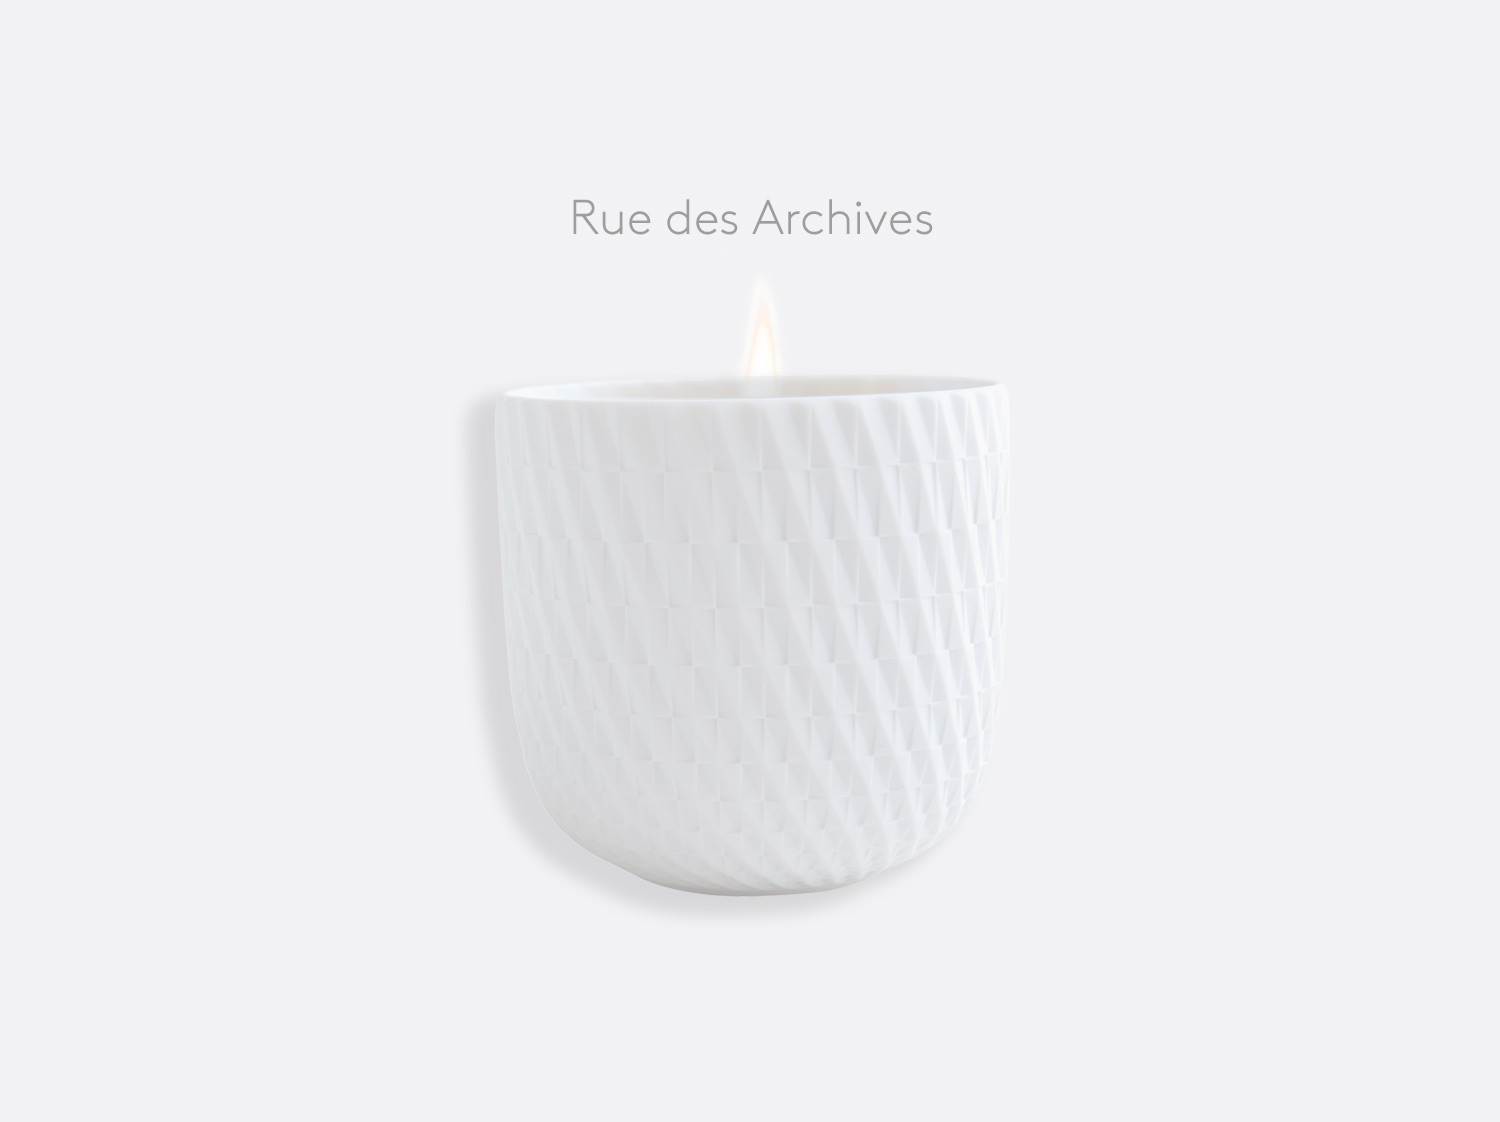 "Pot à bougie 200g rechargeable en biscuit gravé ""Rue des Archives"" en porcelaine de la collection TWIST Bernardaud"